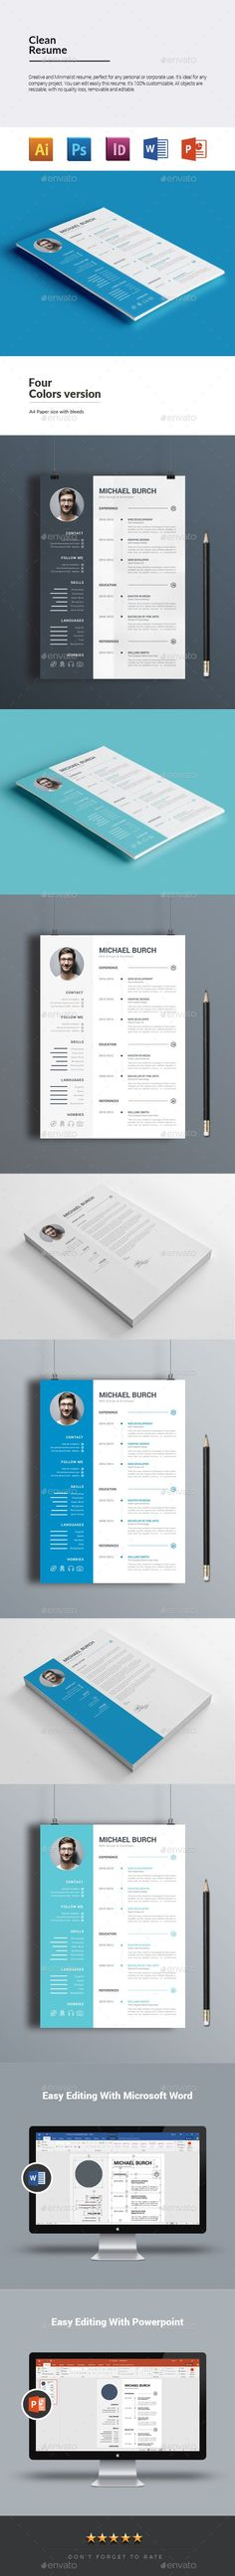 How To Make A Resume In Microsoft Word Captivating Resume Design Template Psd Vector Eps Ai Illustrator Ms Word .